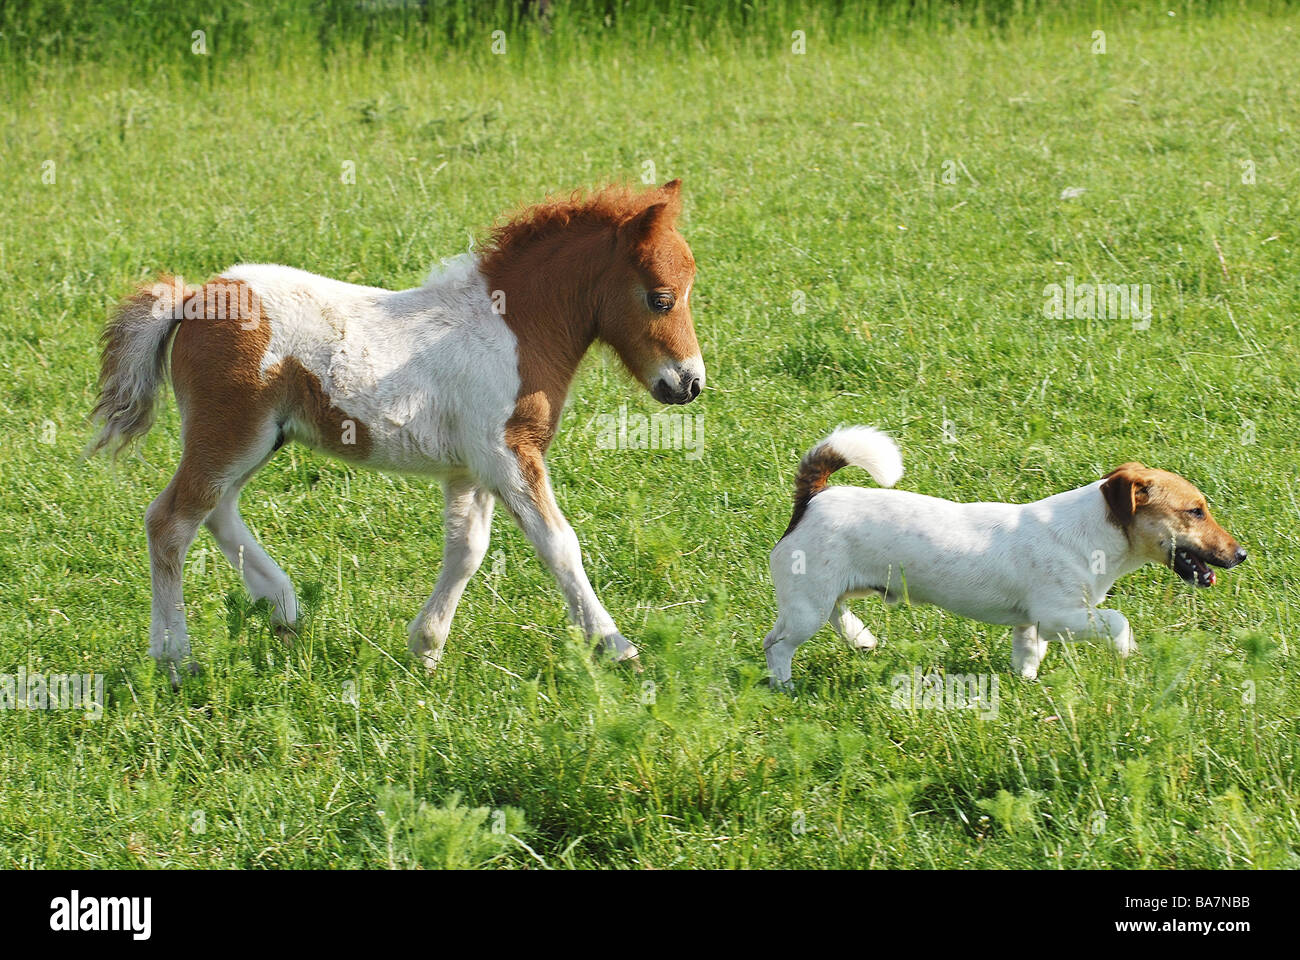 animal friendship mini shetland pony foal and jack russell terrier stock photo 23527375 alamy. Black Bedroom Furniture Sets. Home Design Ideas